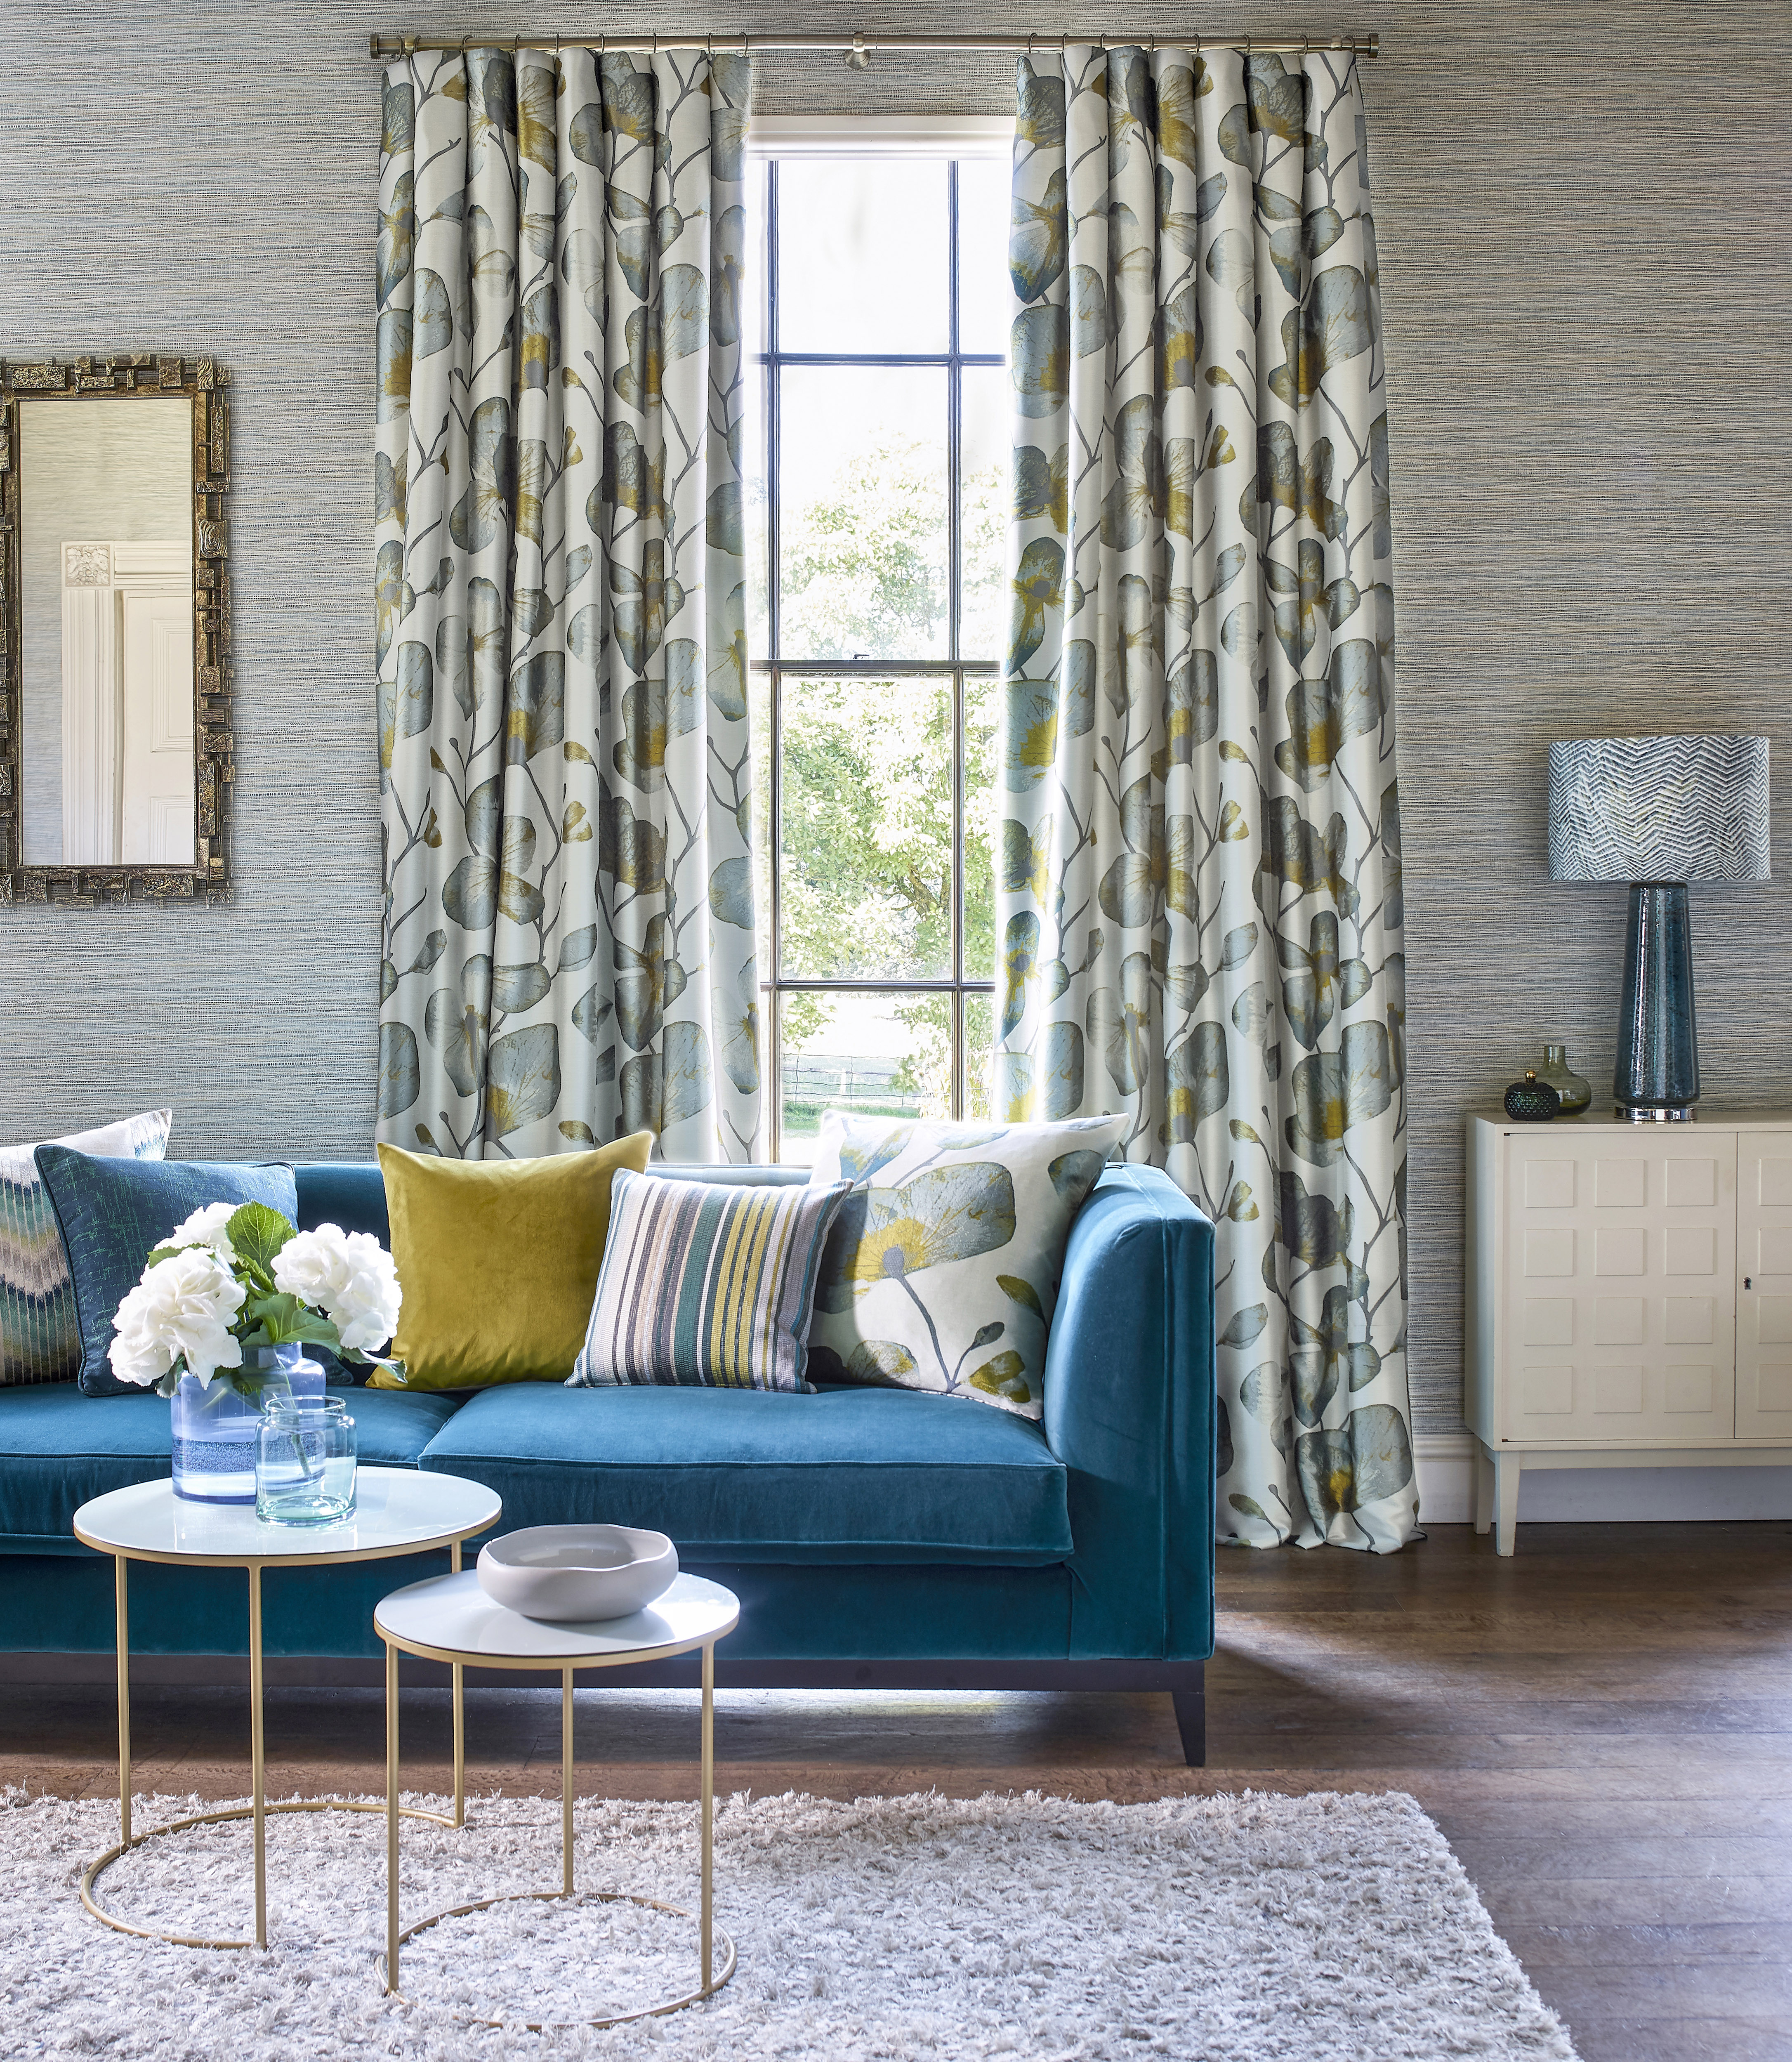 Colour and fabric ideas for the living room